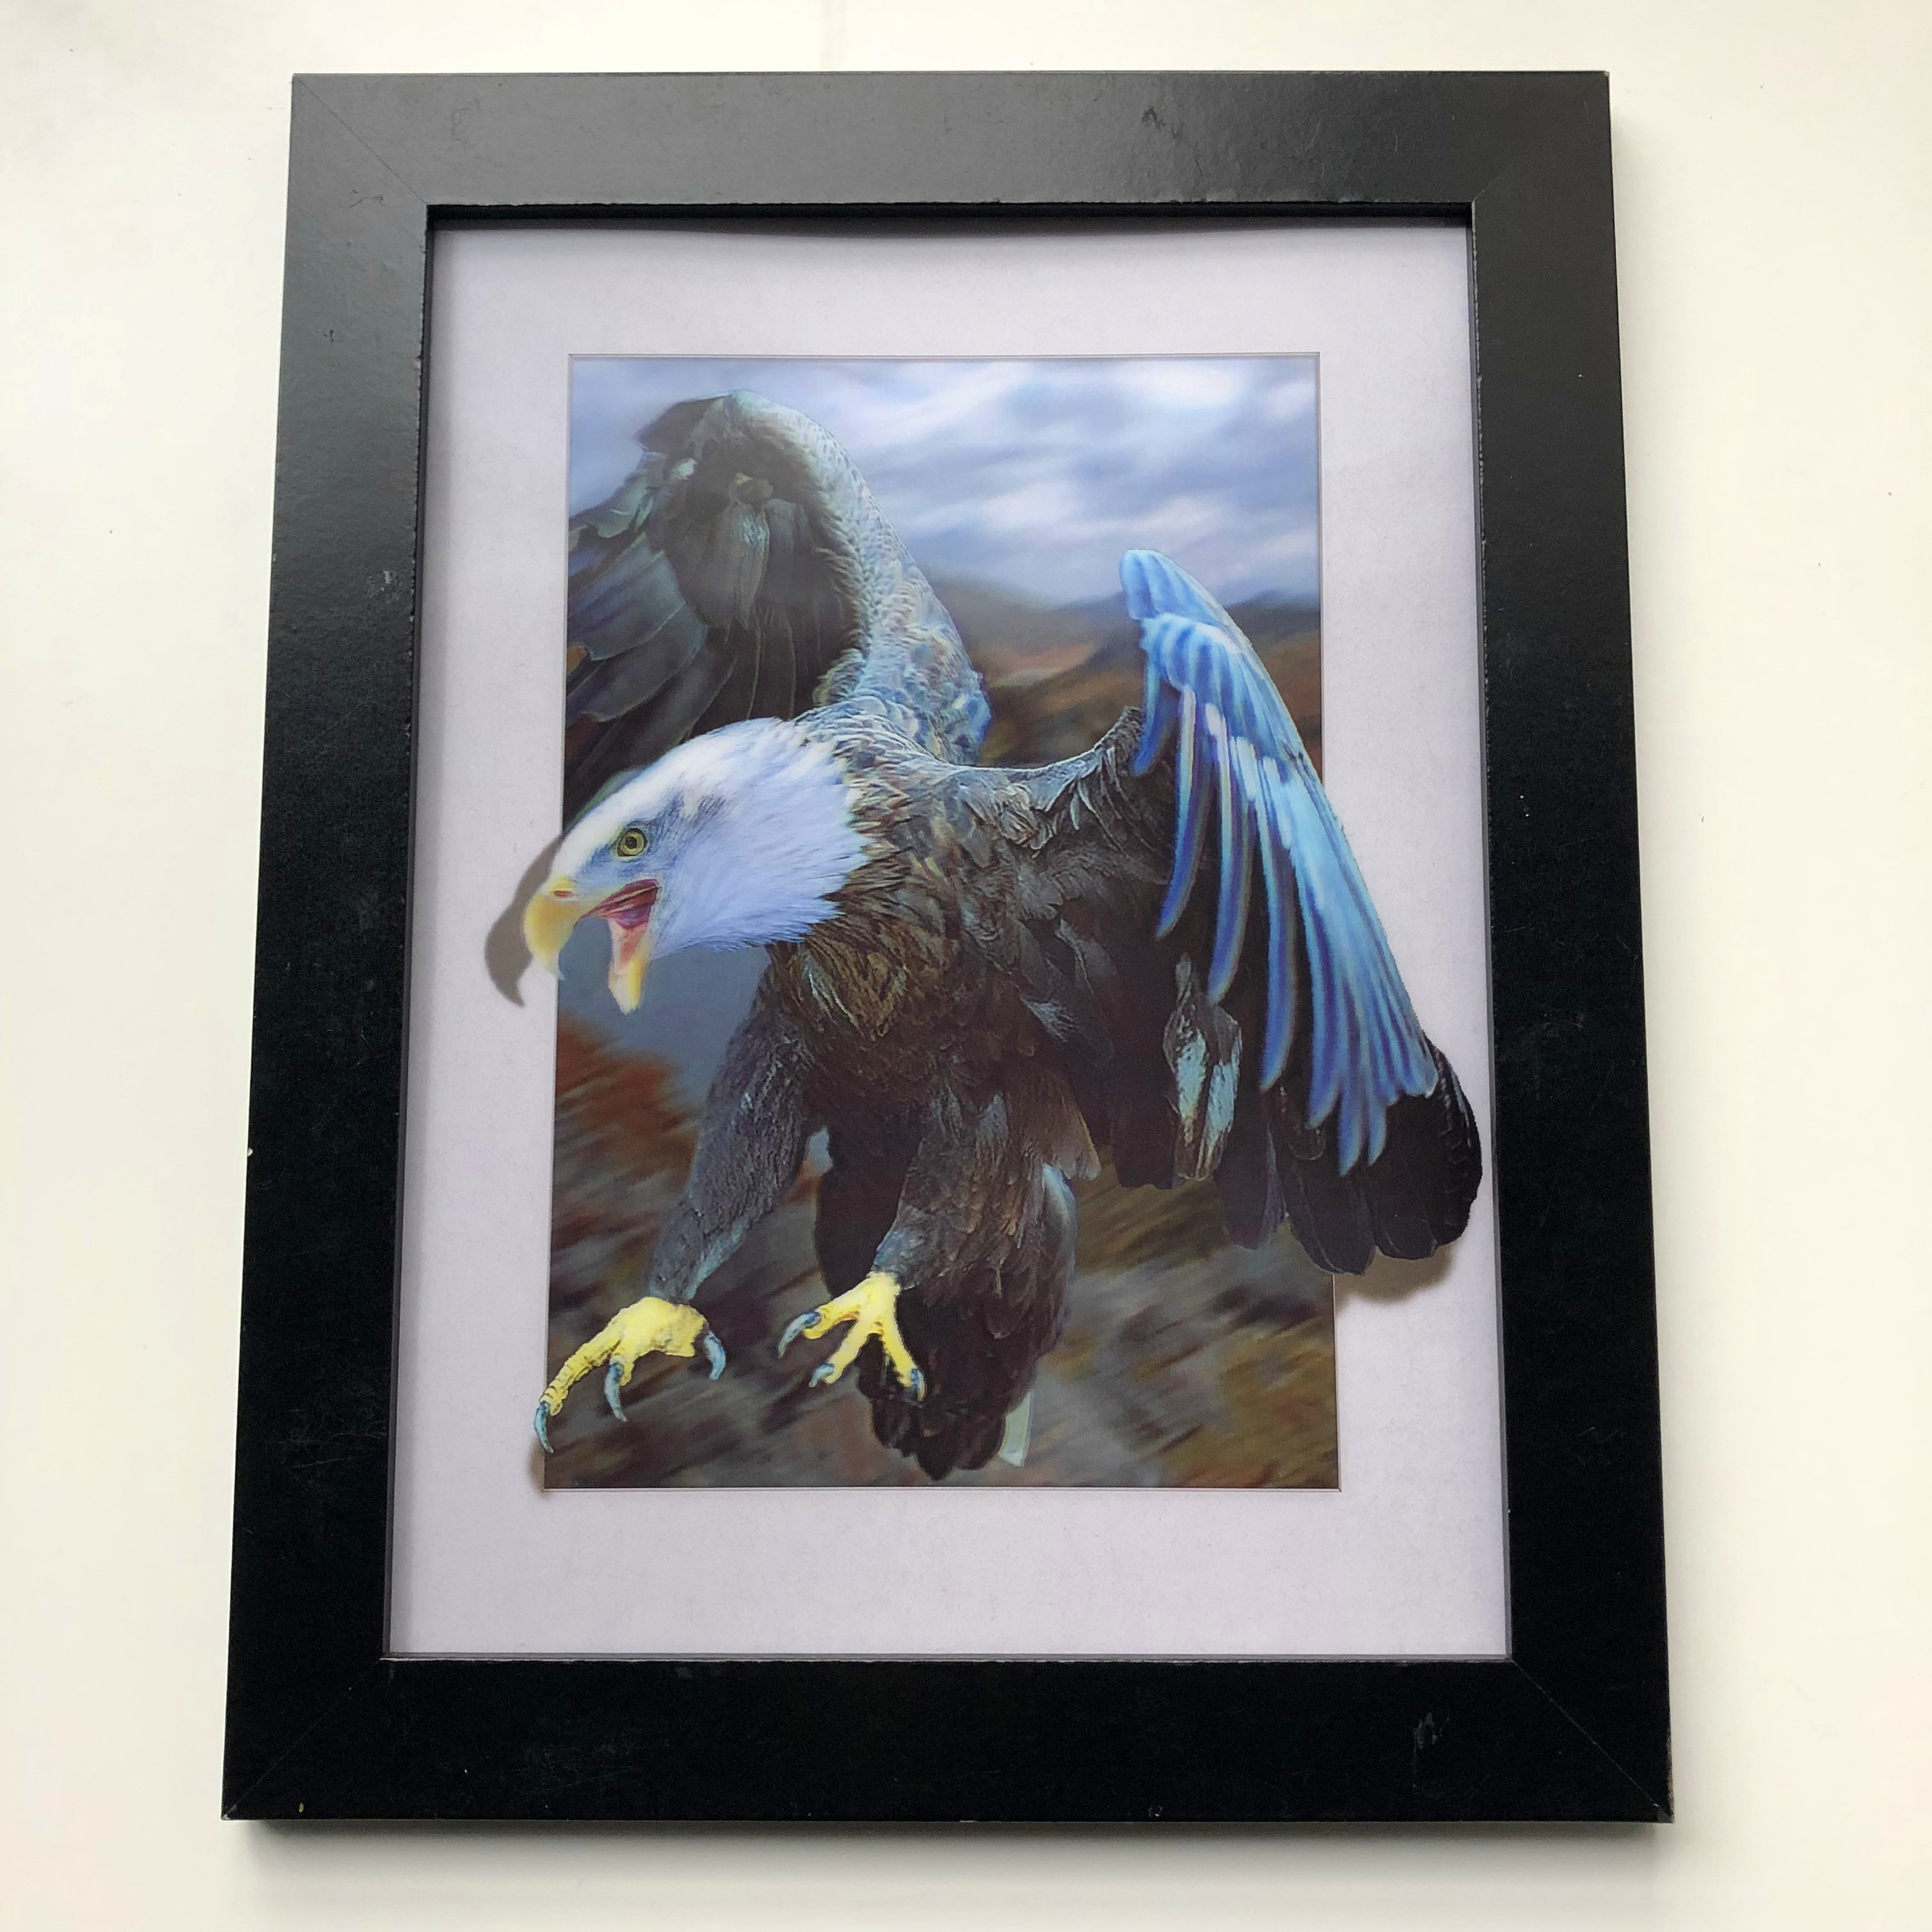 House natural pictures 3d/5d wallpaper modern home decoration of eagle